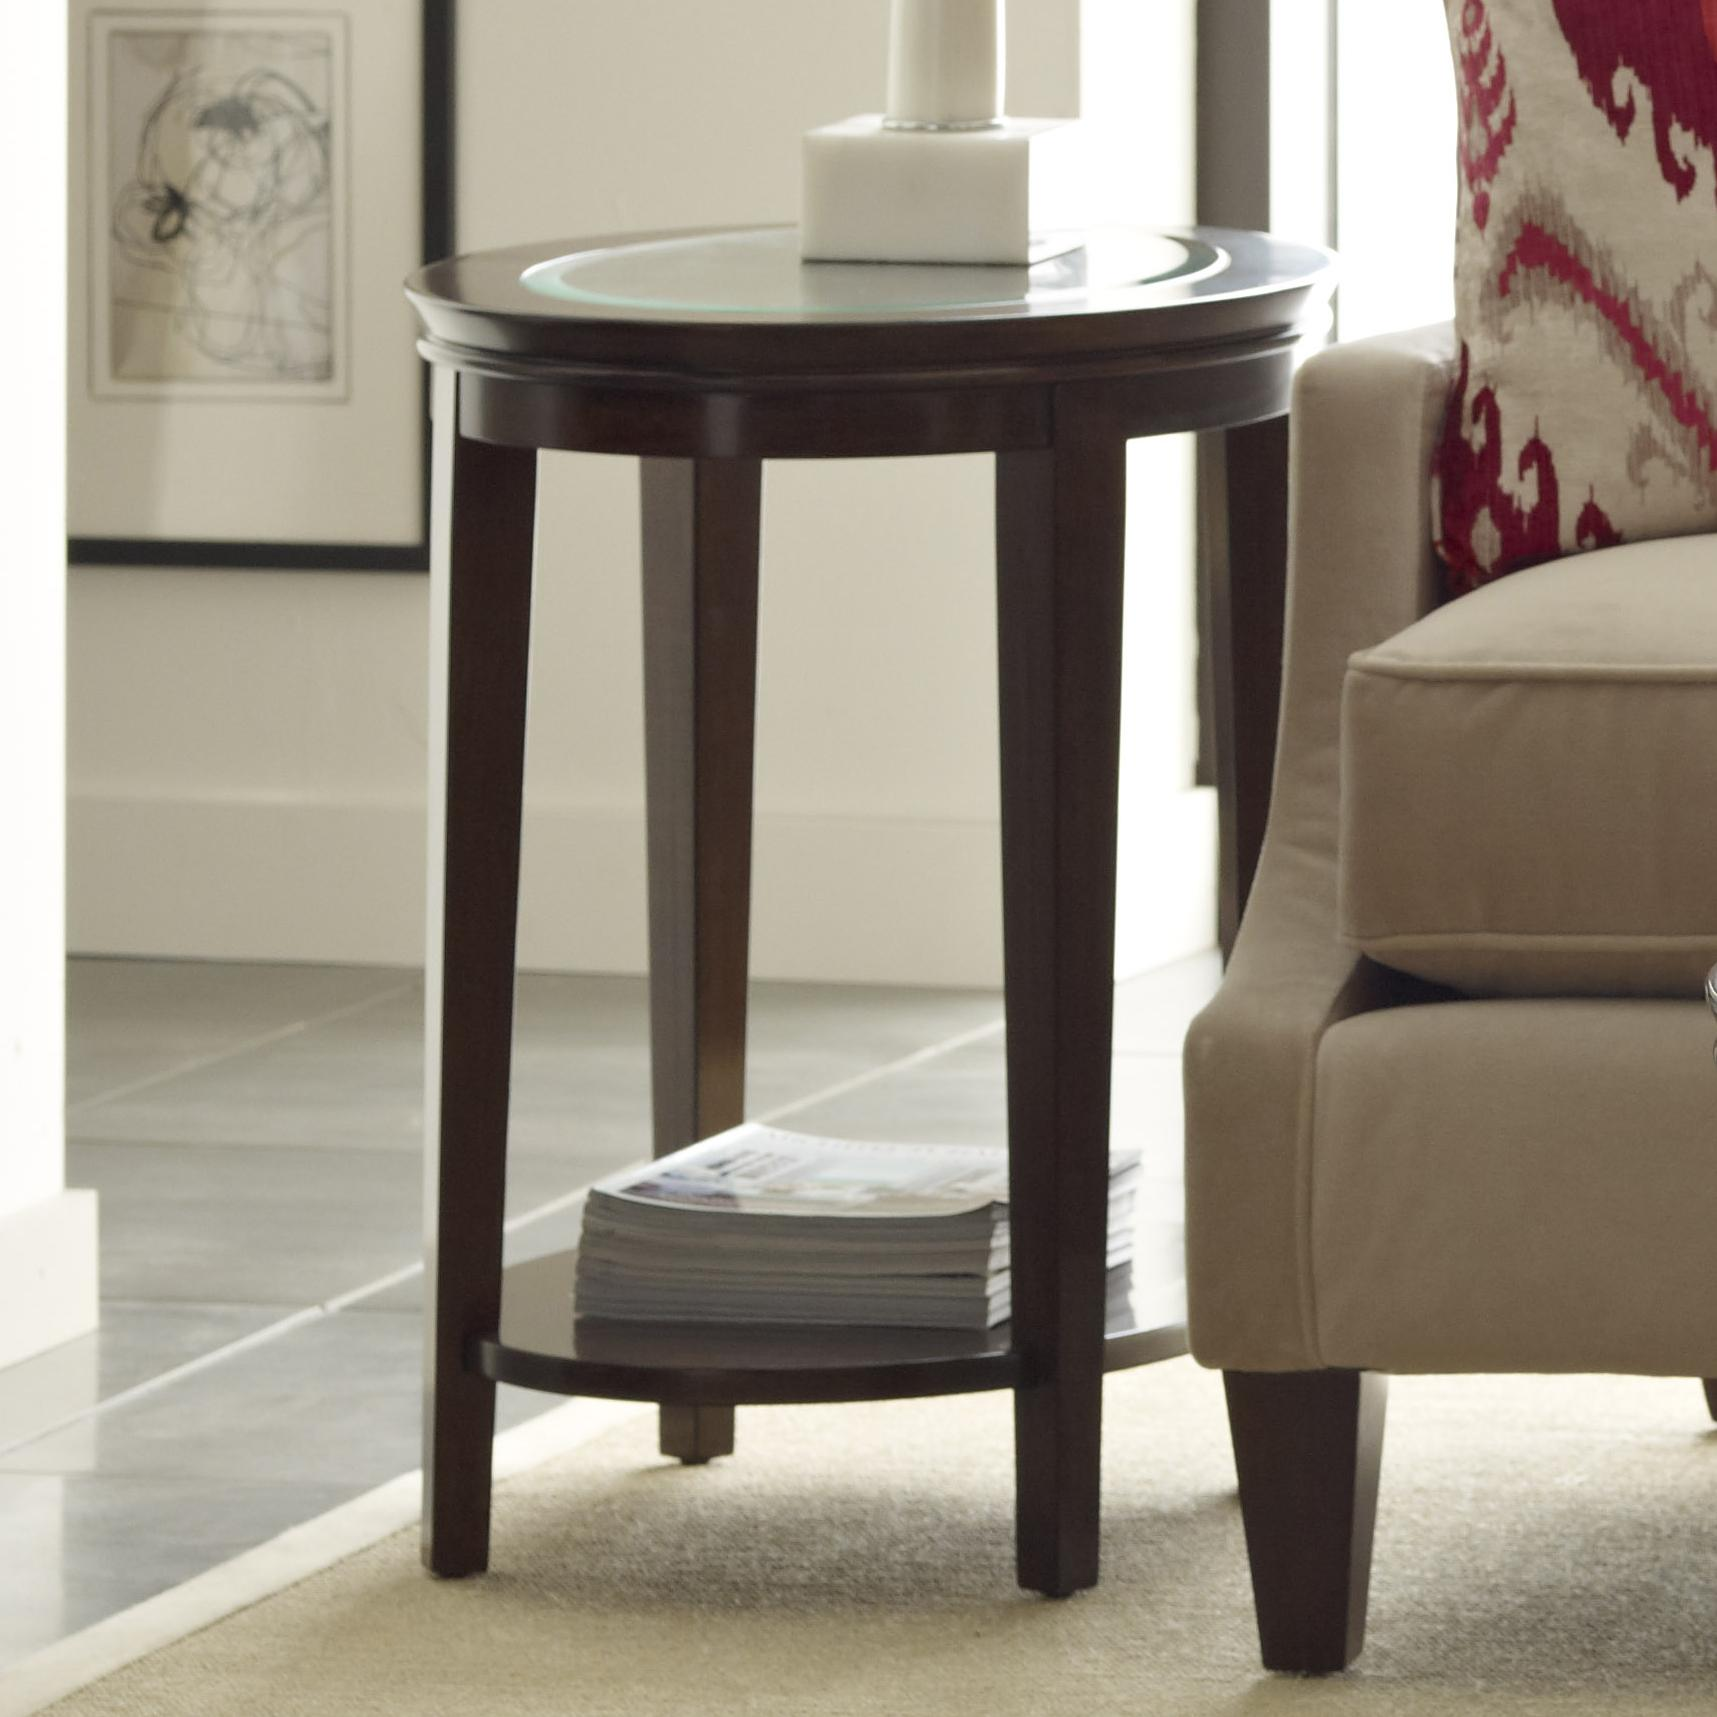 Transitional Elise Oval End Table With Glass Top